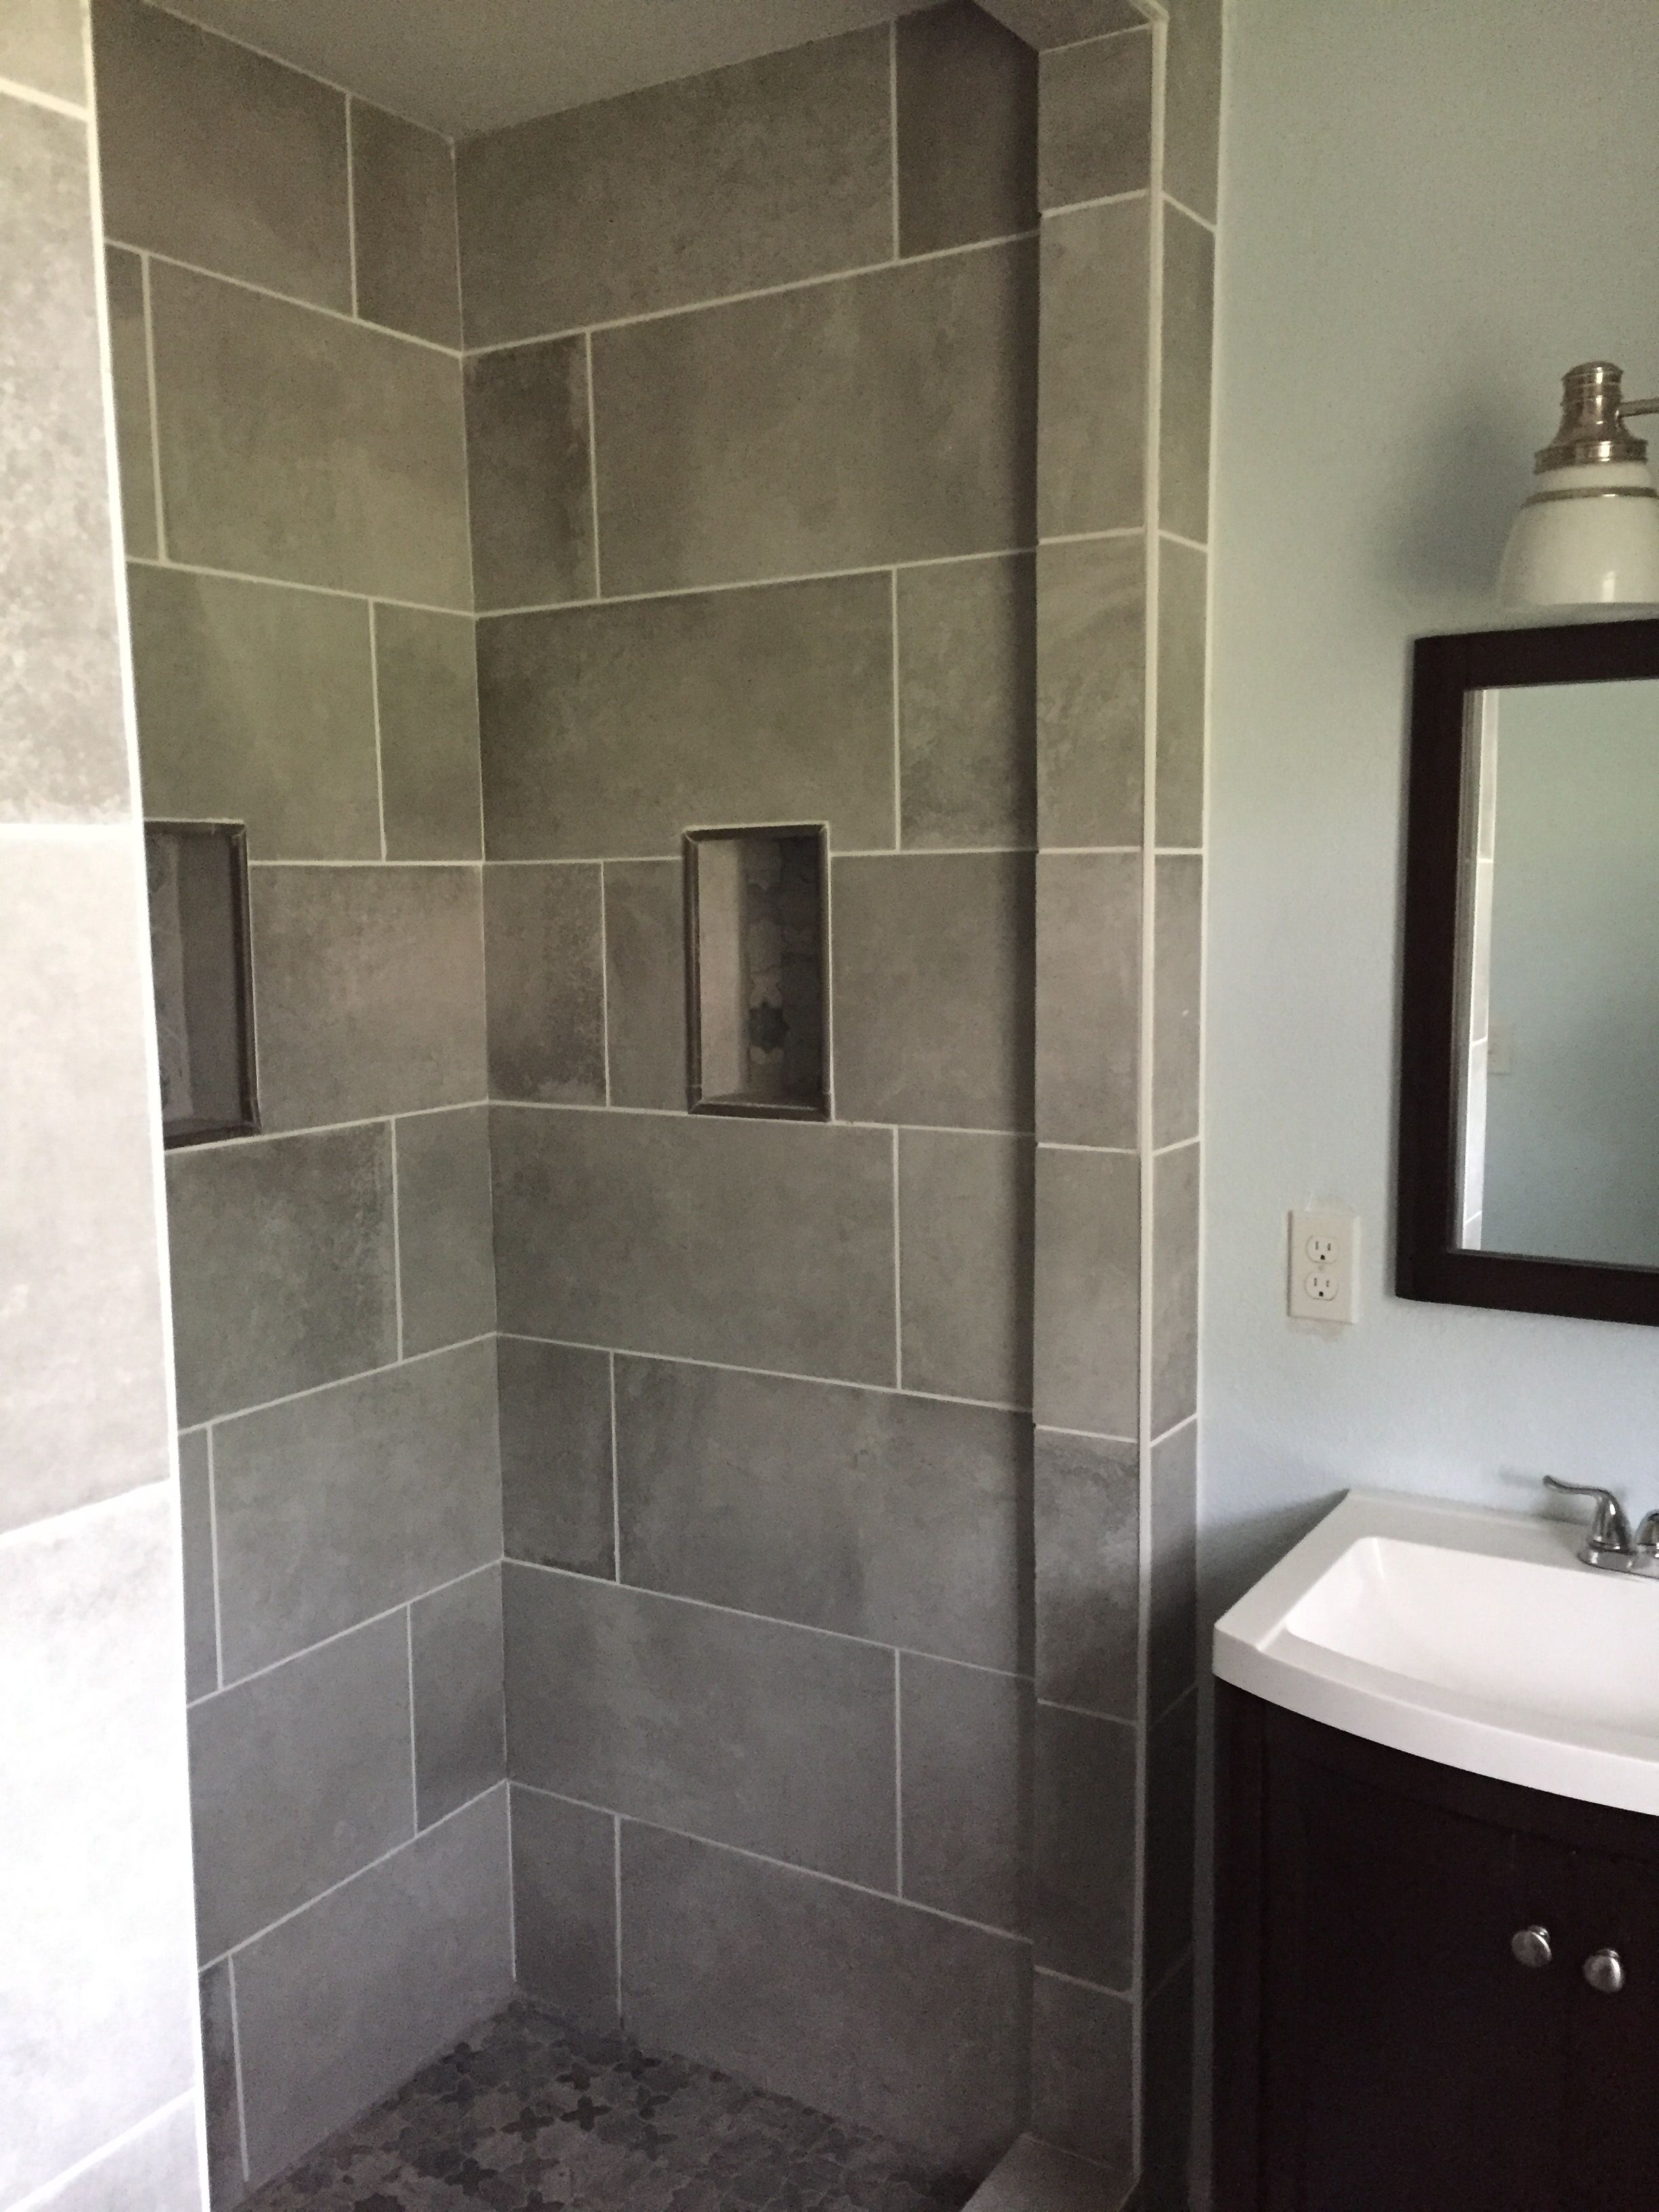 Finally Finished My Bathroom Paint Helium Behr Paint Tile COTTo - Behr bathroom paint home depot